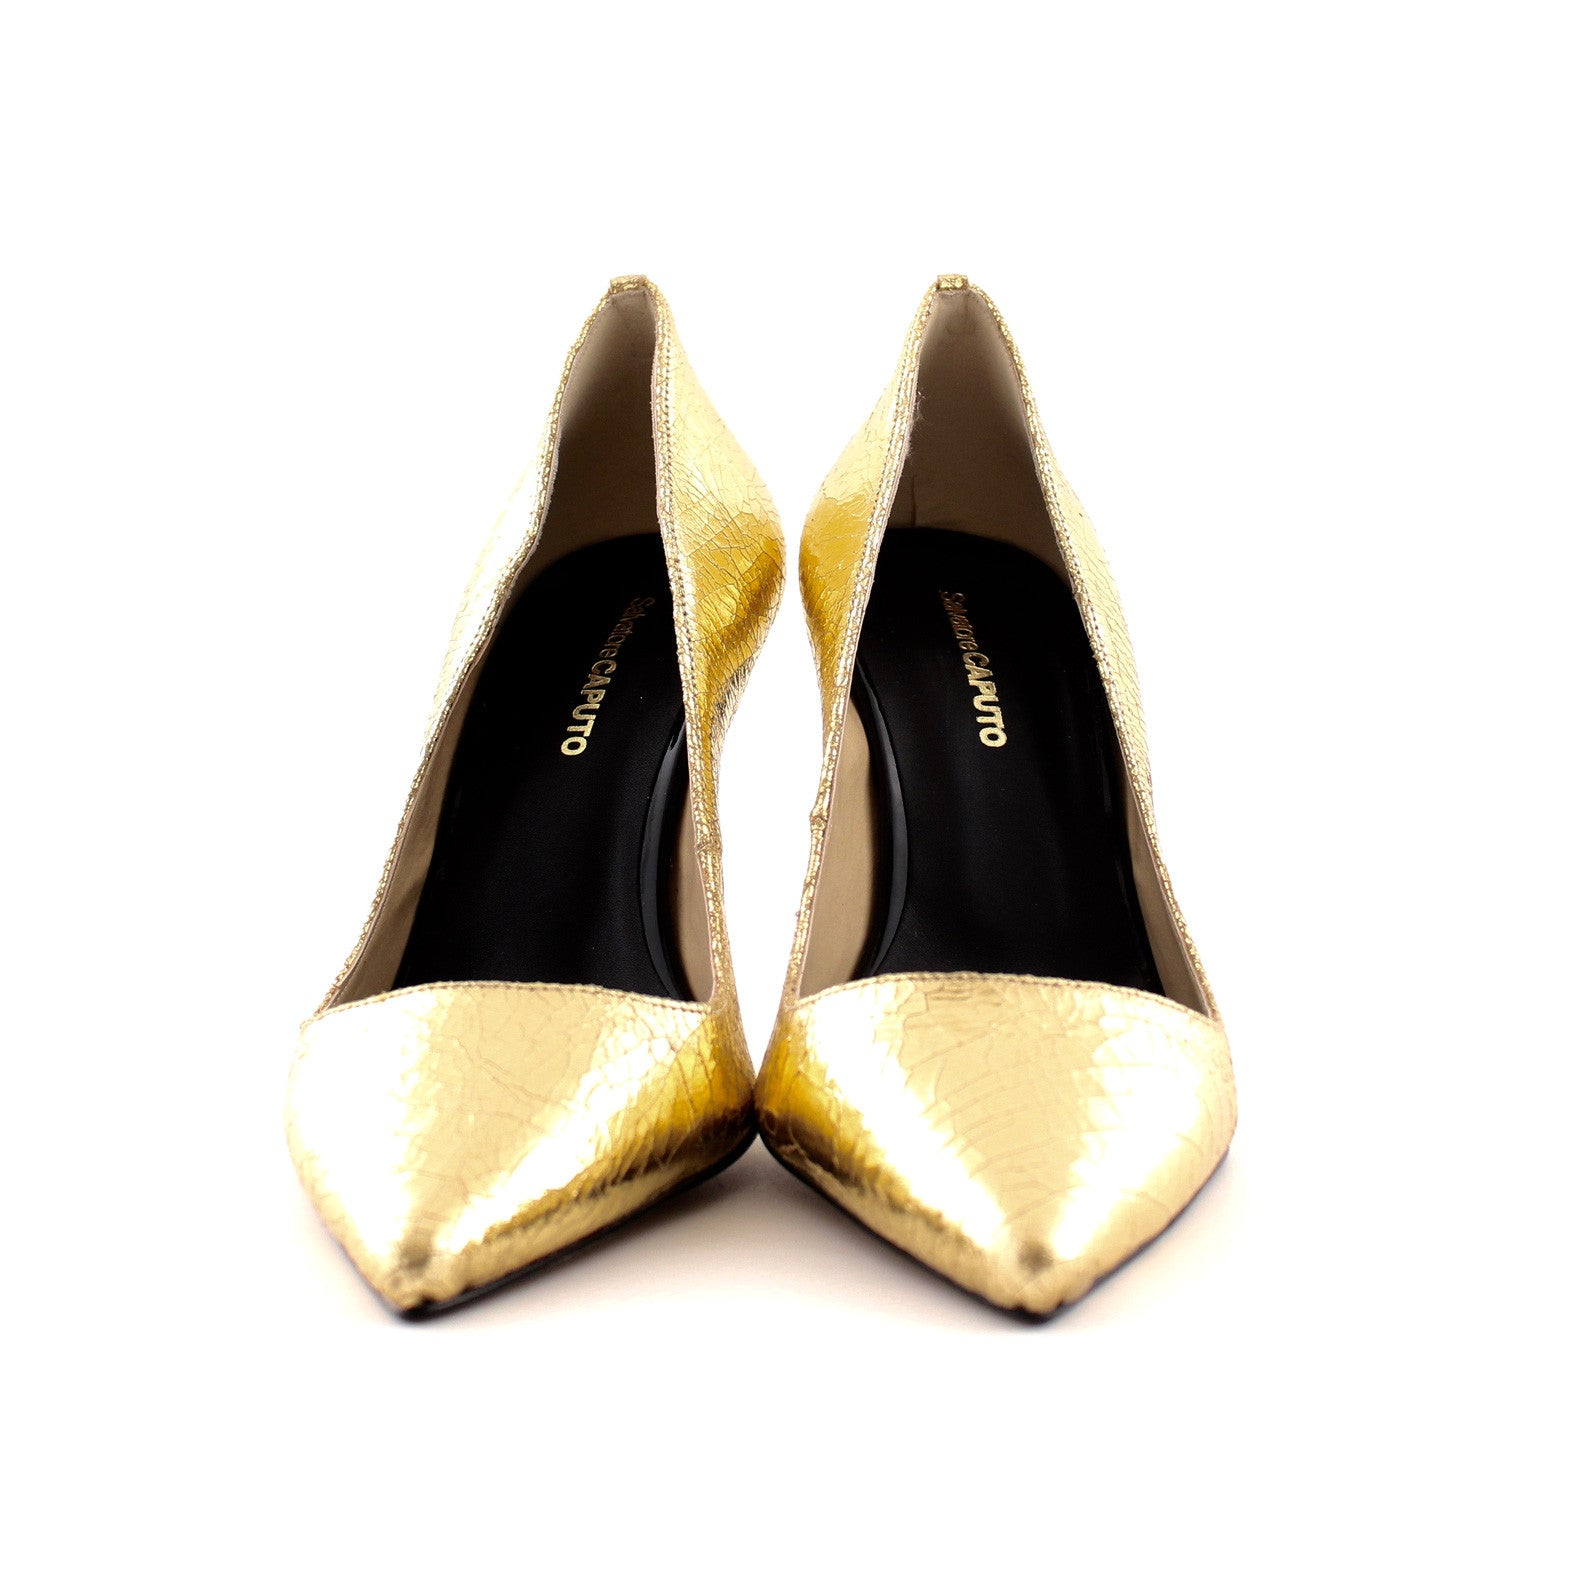 FABIA laminato oro - Salvatore Caputo Shoes